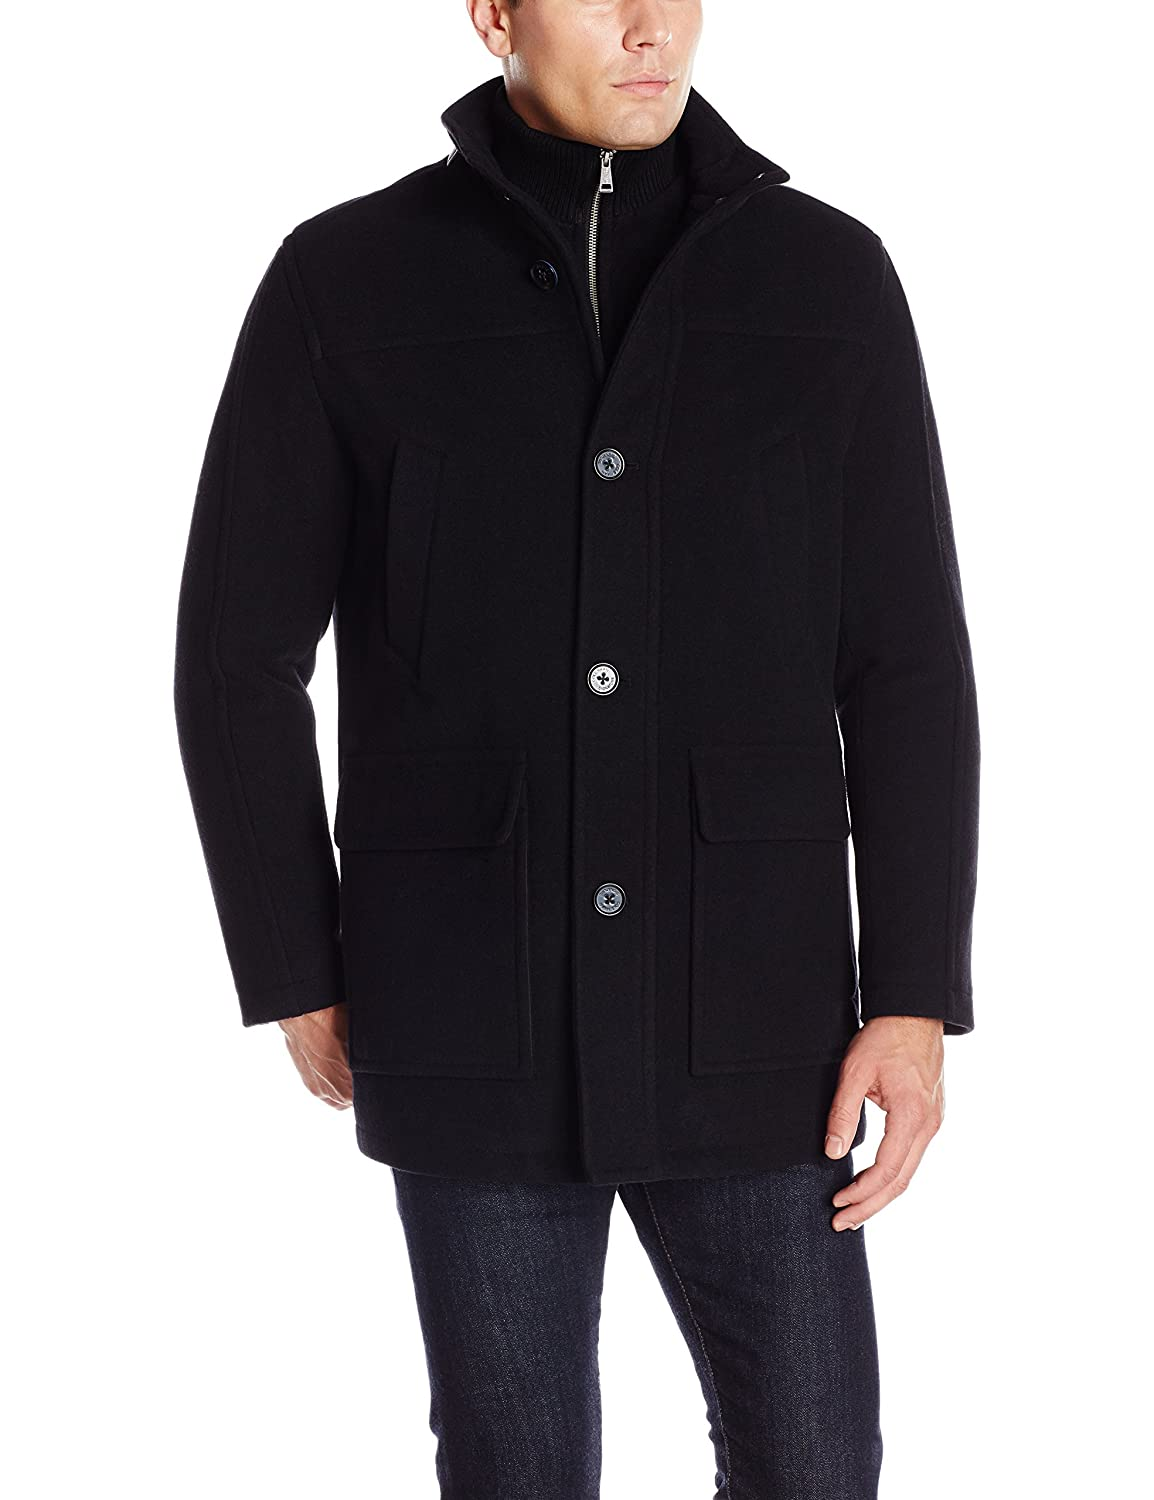 Cole Haan Signature Men's Wool Plush Car Coat with Attached Bib 535SW916